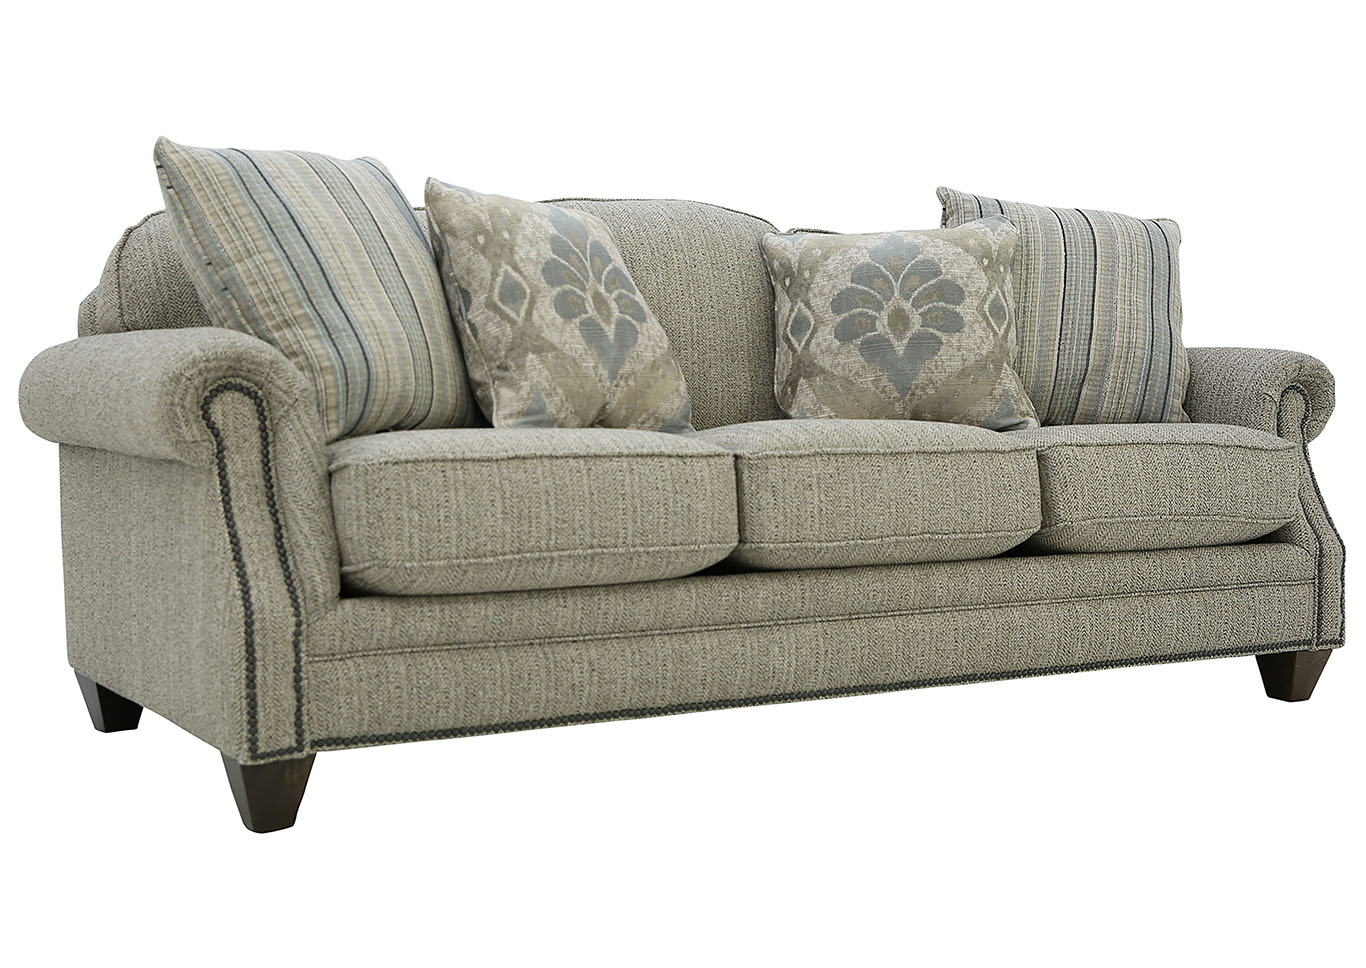 Tilly Fabric Sofa Queen Sleeper Ivan Smith Tilly Slate Sofa